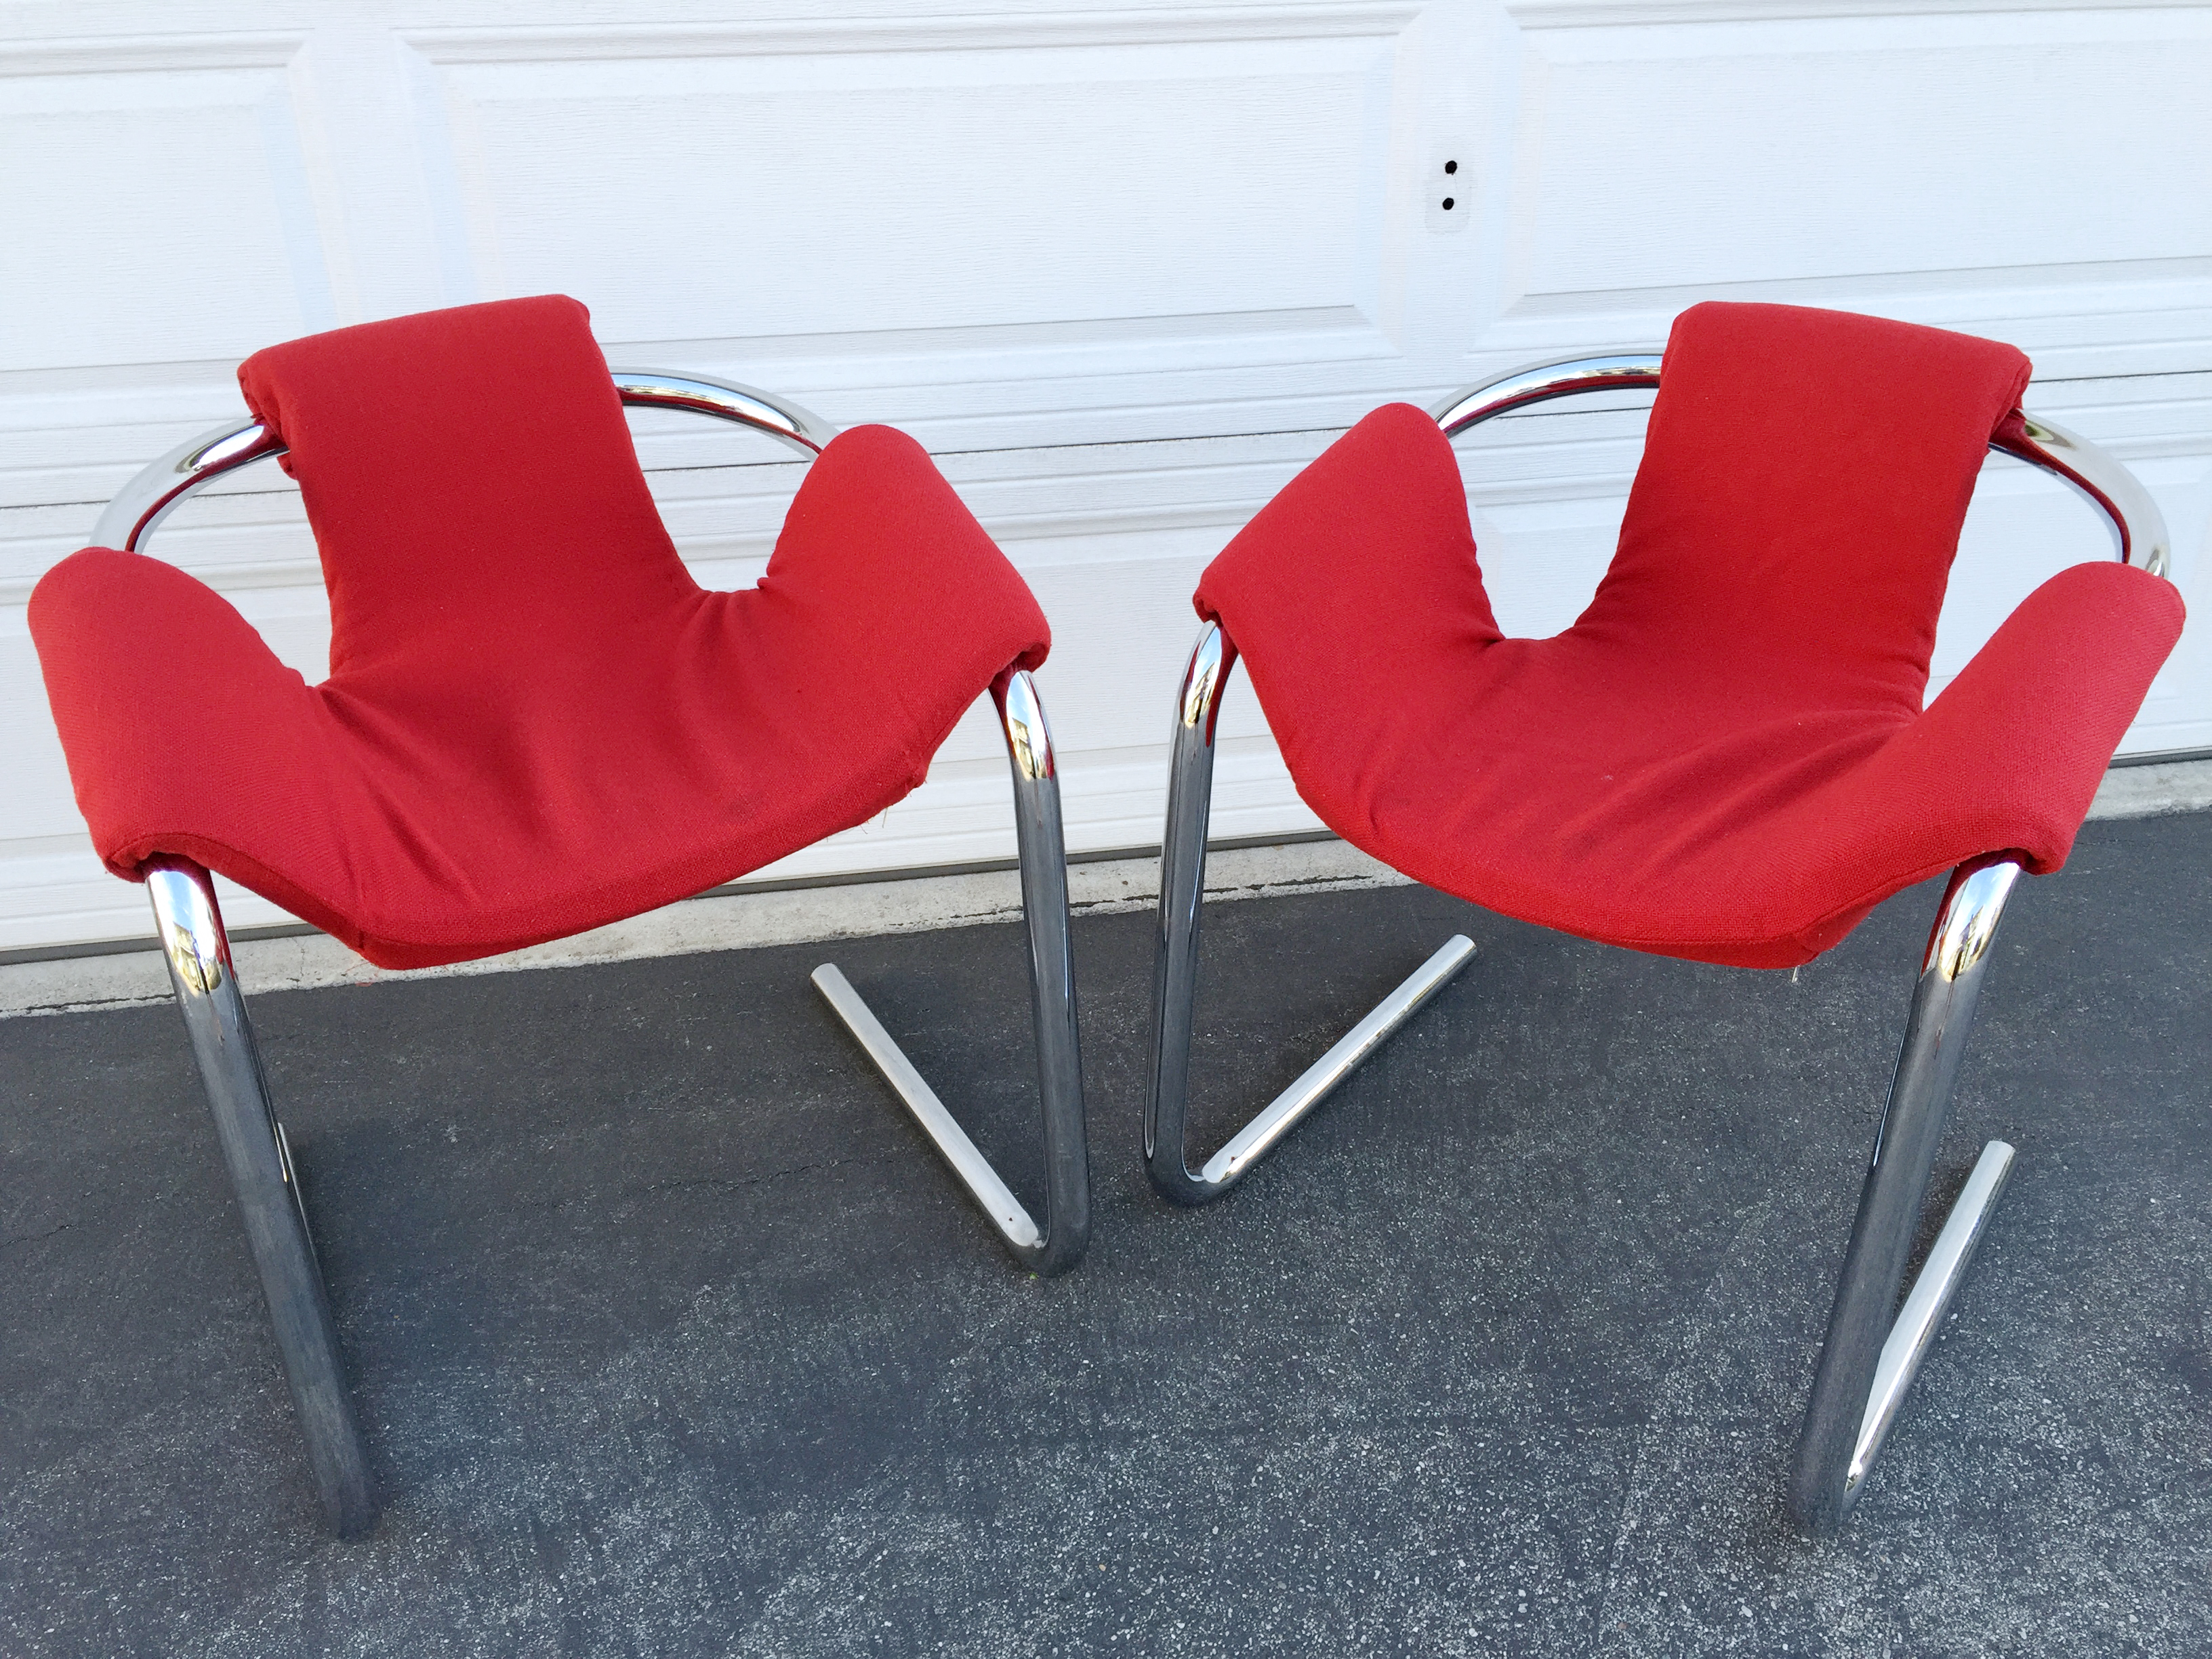 Vecta Vintage Zermatt Chrome Sling Chairs   A Pair   Image 2 Of 7